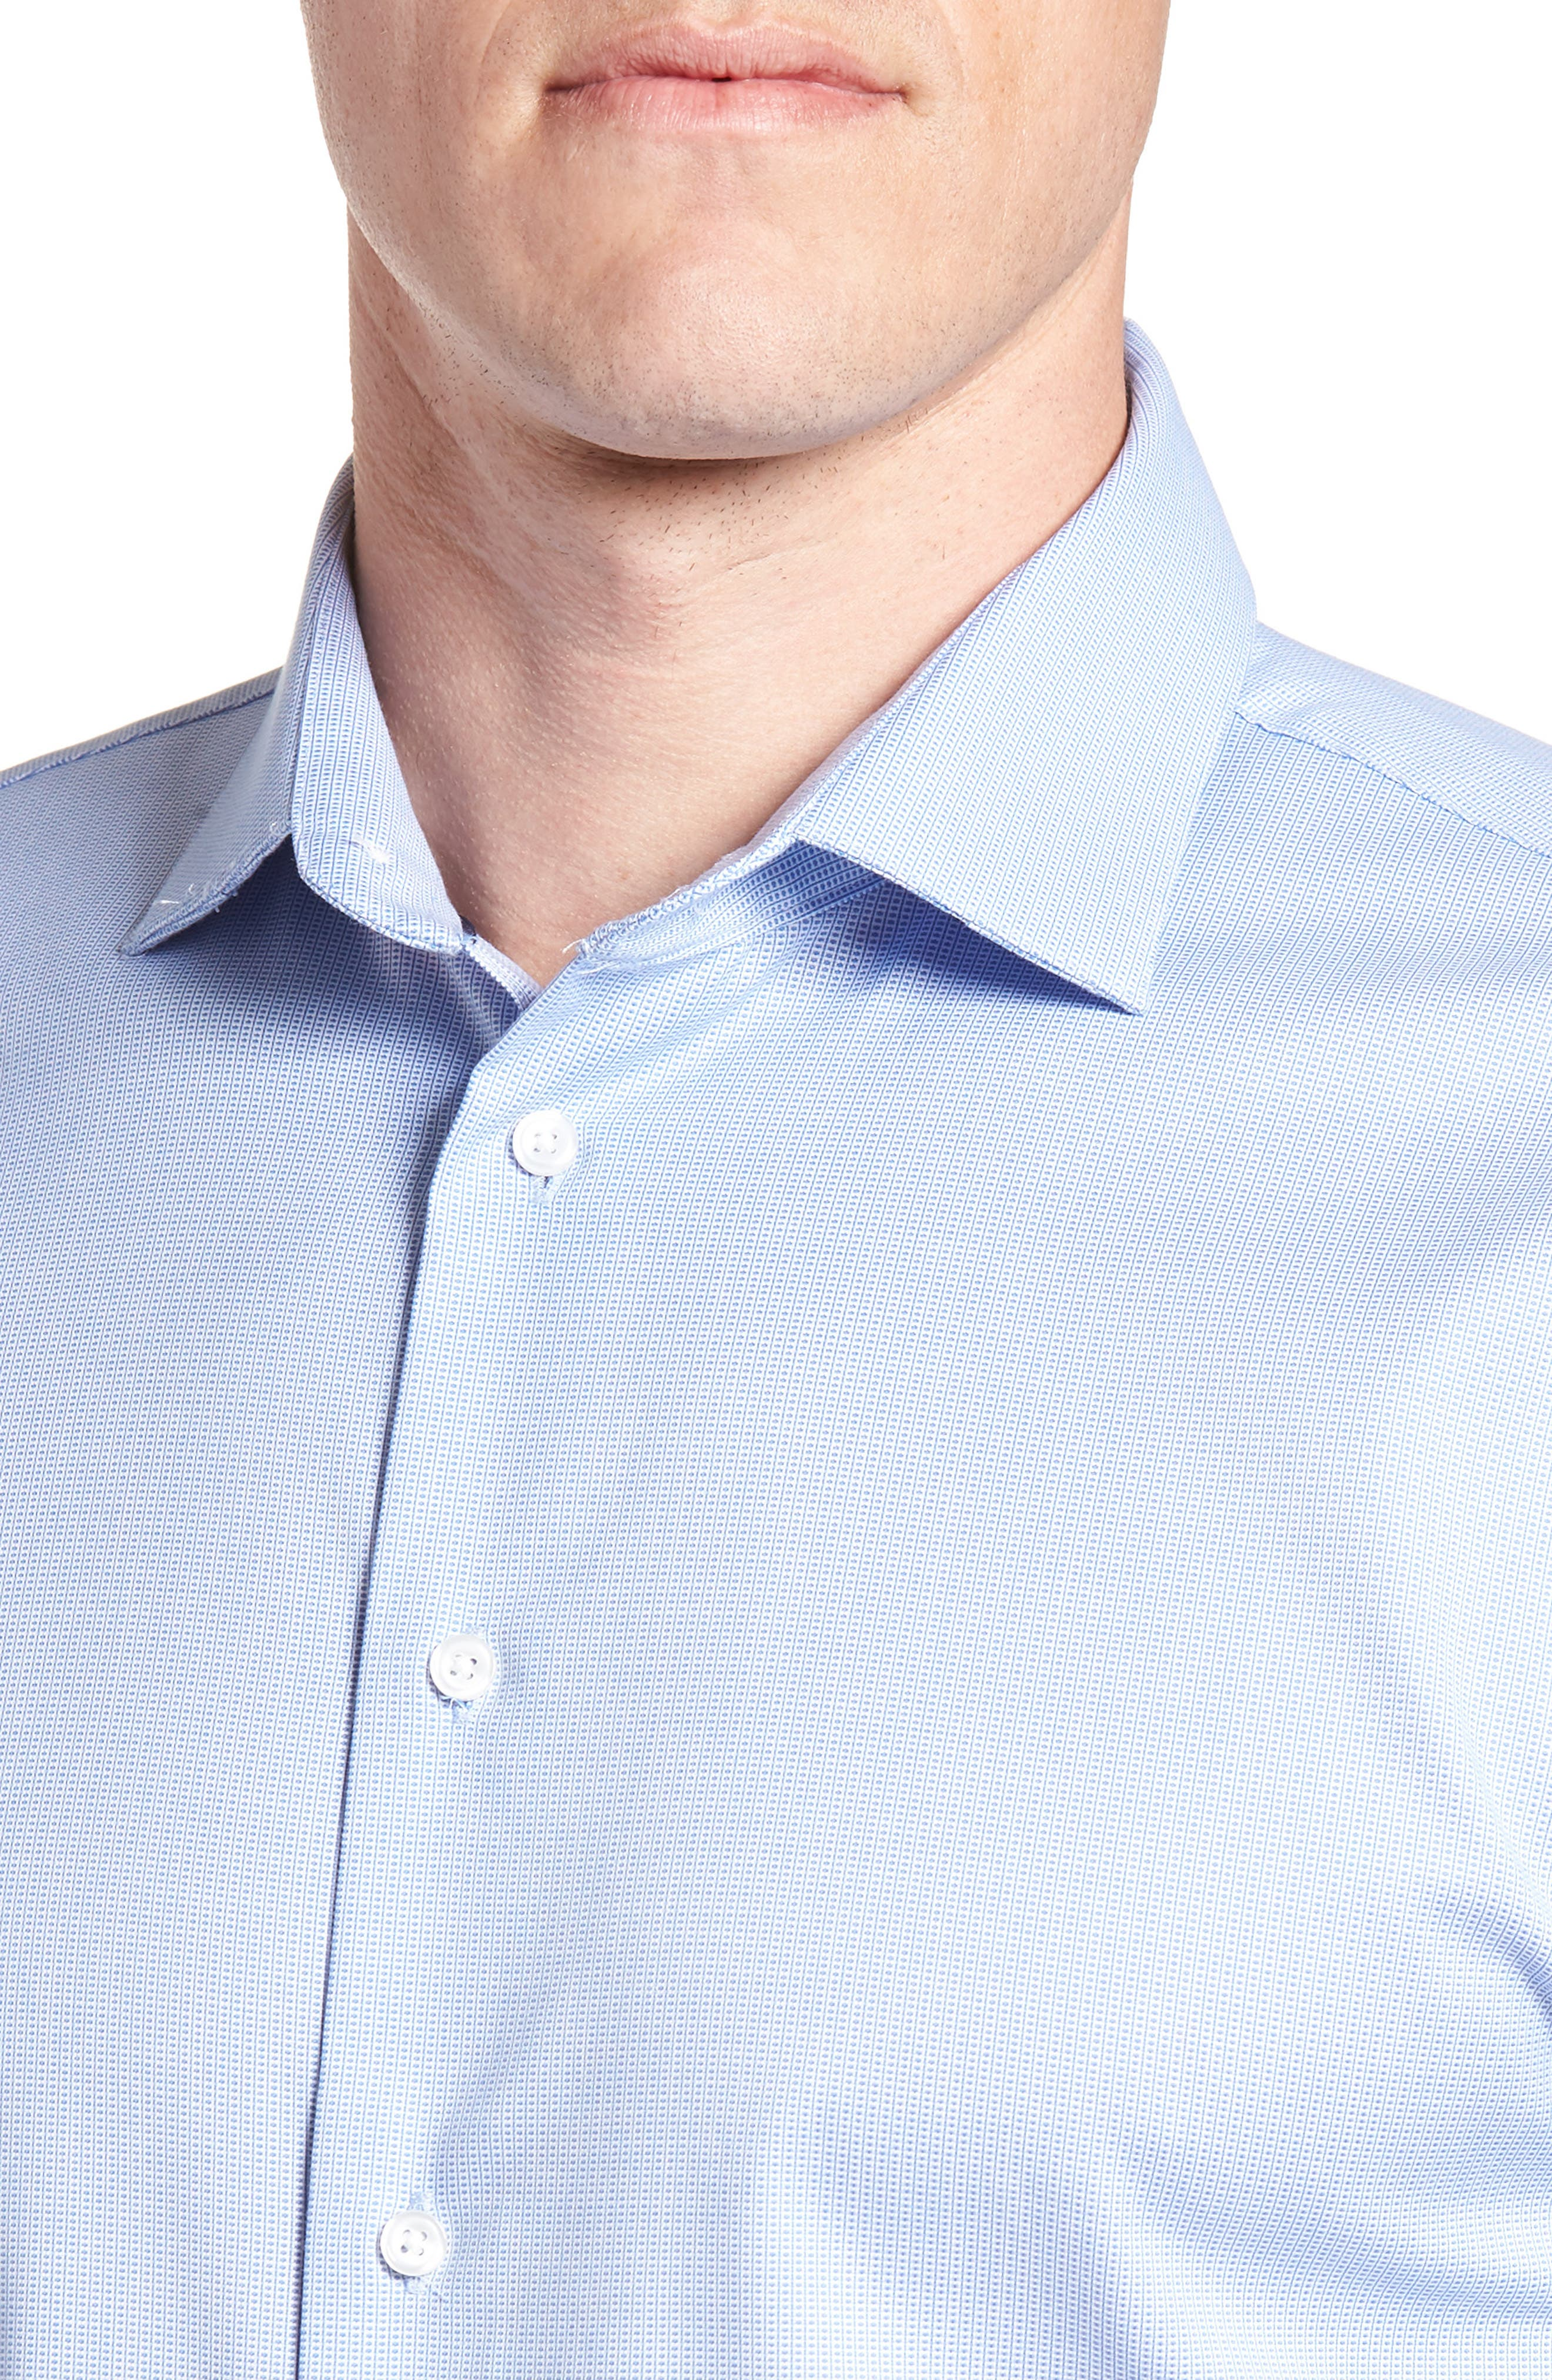 Trim Fit Non-Iron Stretch Dress Shirt,                             Alternate thumbnail 2, color,                             450